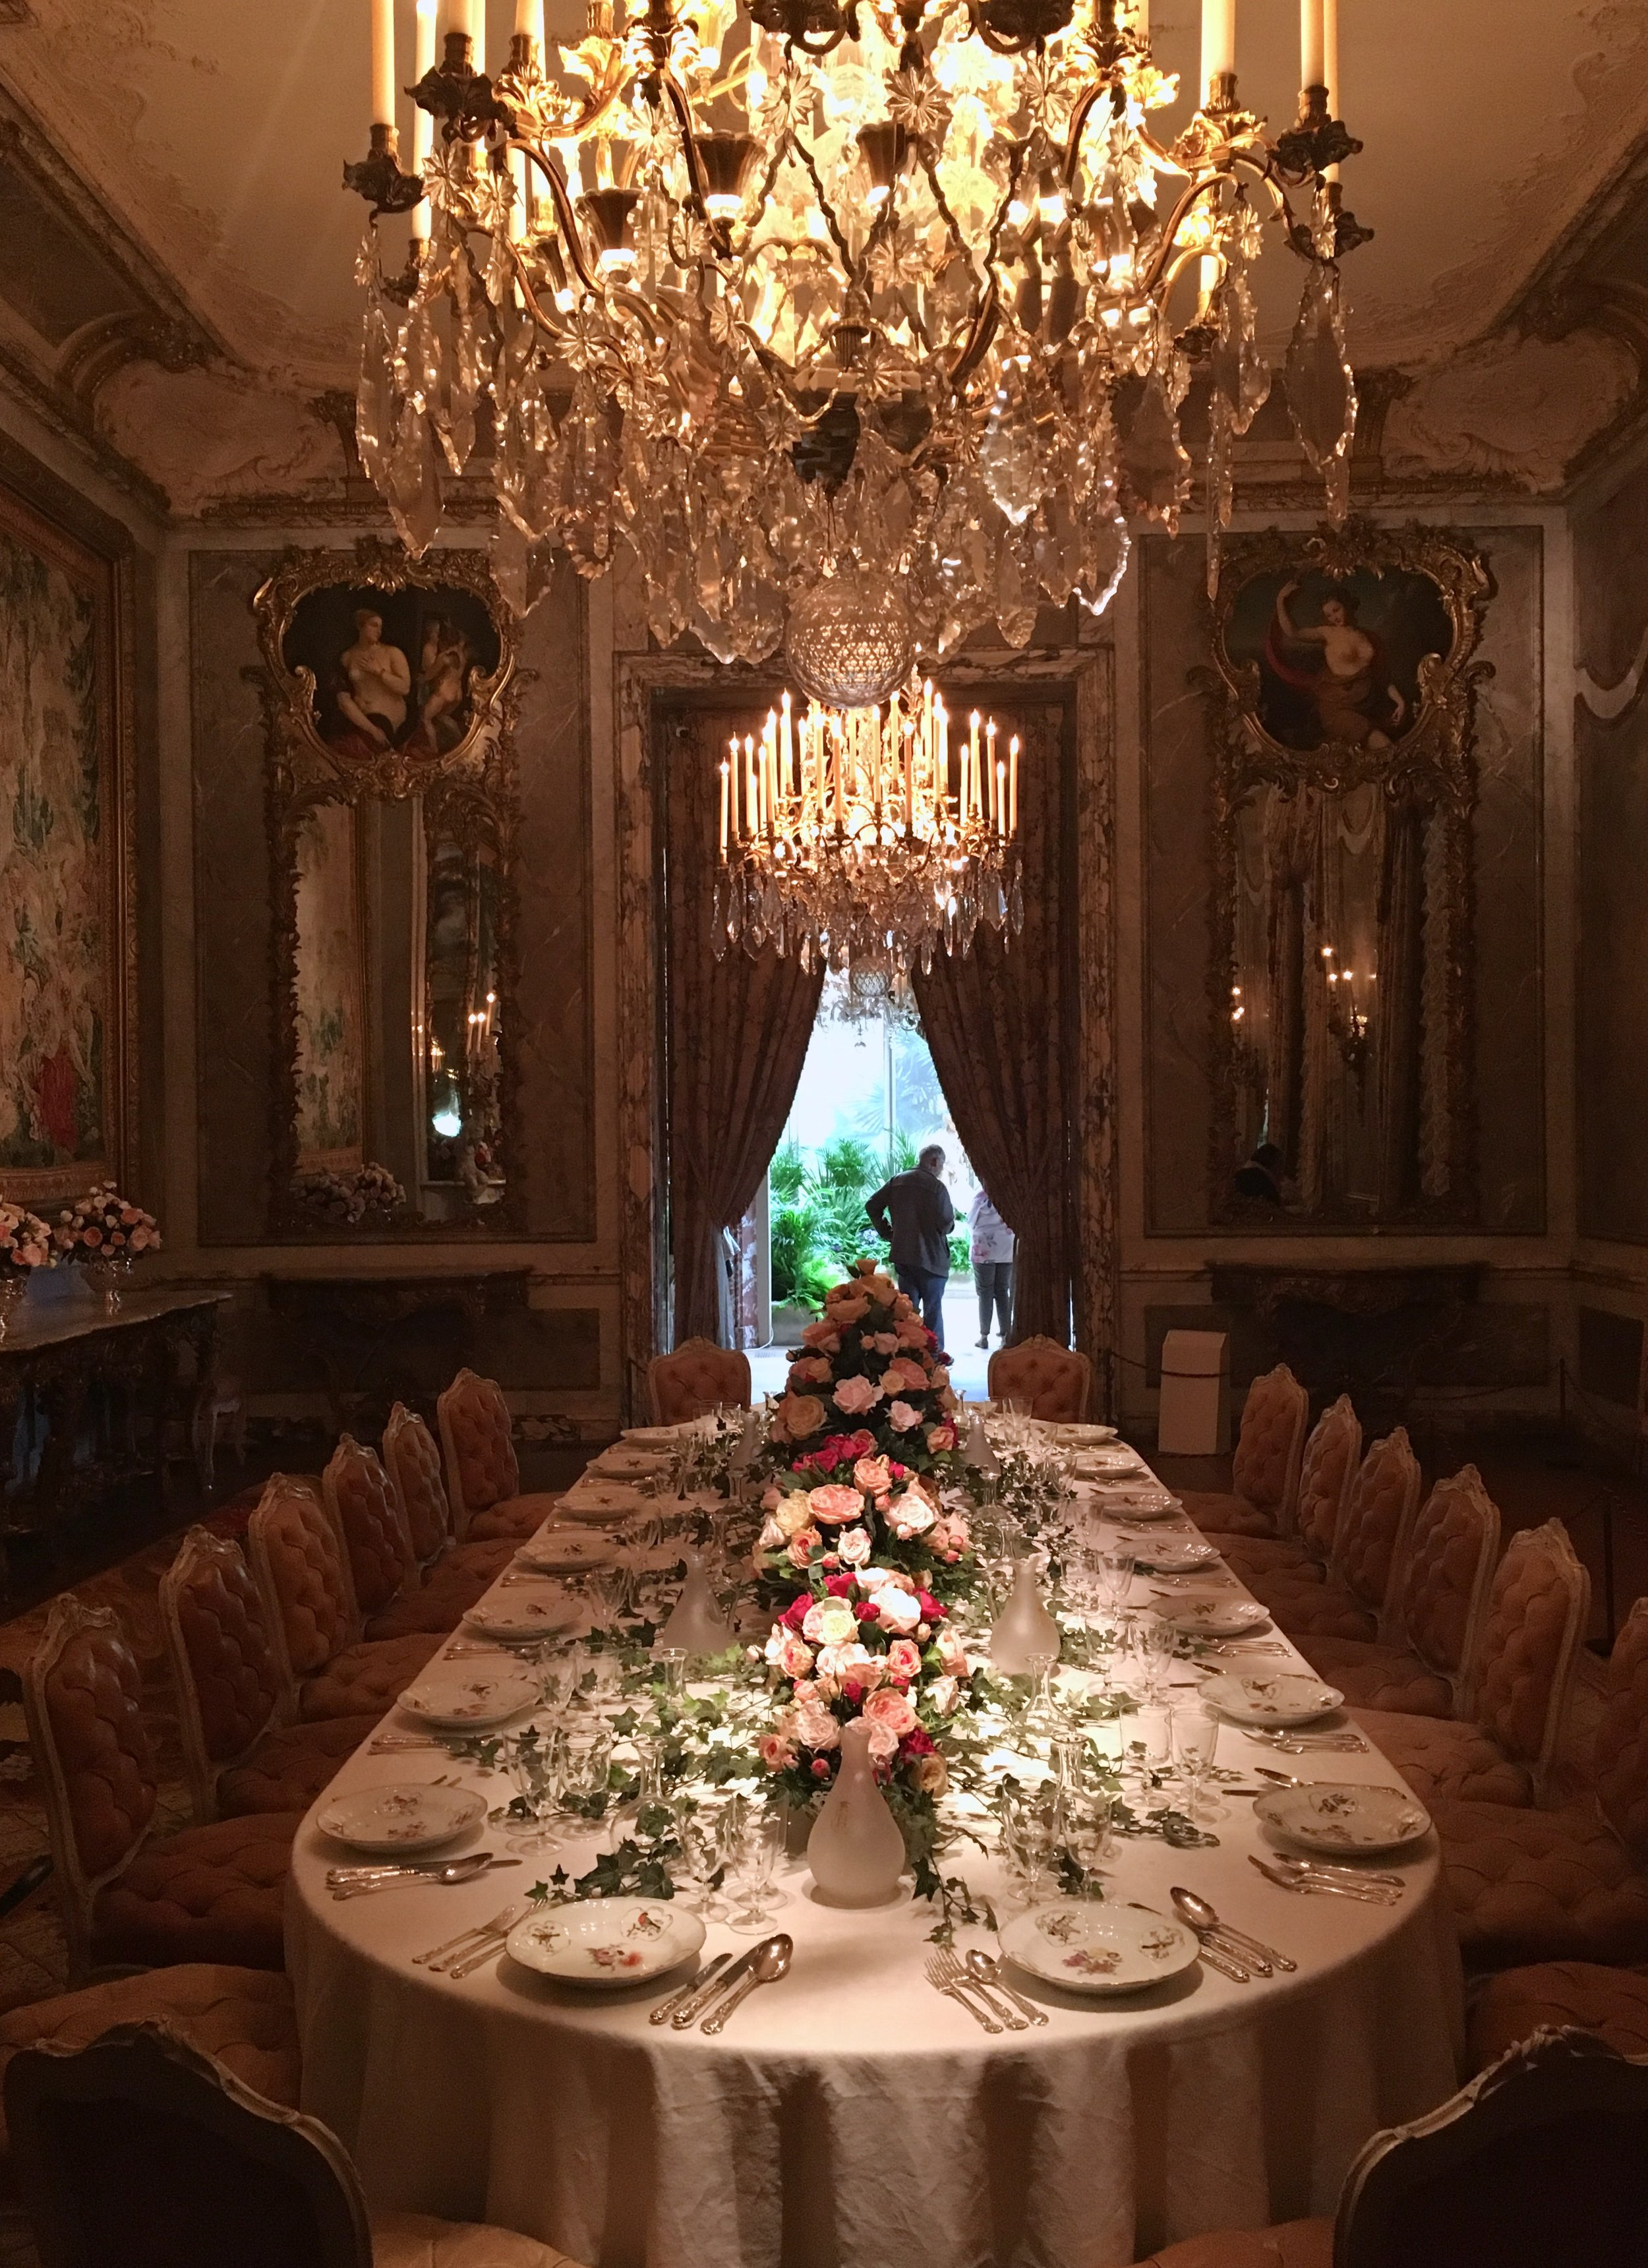 UK Waddesdon Manor dining room table National Trust French Chateau Rothschild Buckinghamshire garden chateau Eileen Hsieh Follow That Bug .jpg